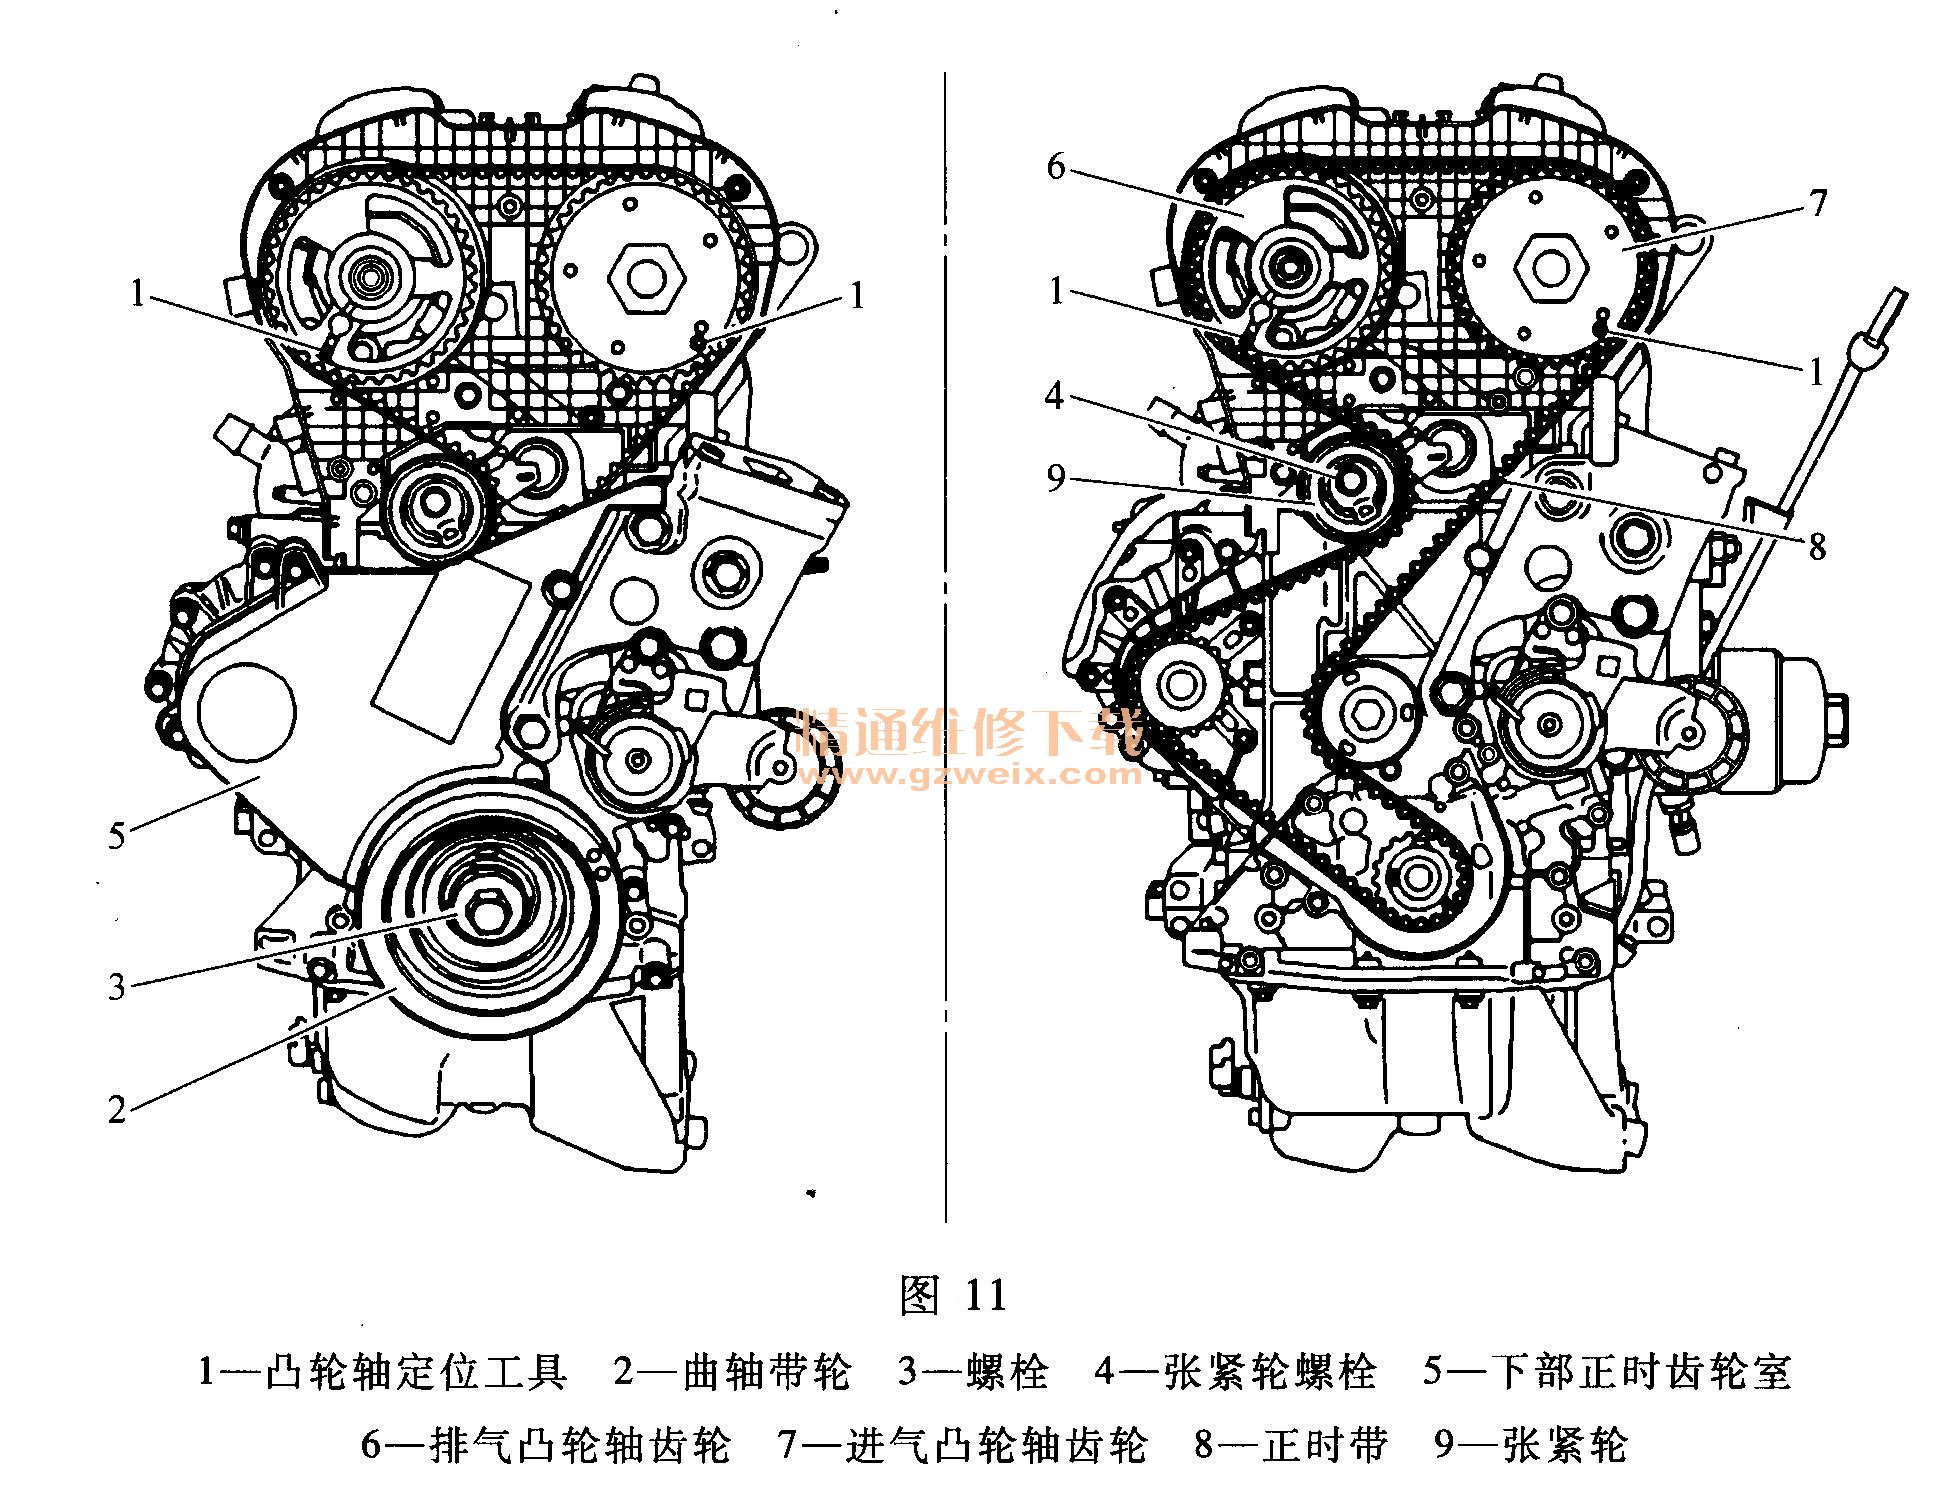 Viewtopic together with 93175747 besides 91 Ford F 350 Fuse Box Diagram moreover 2006 Audi 2 0t Engine Diagram further 2014 Acura Mdx Fuse Box. on saab 2 0t